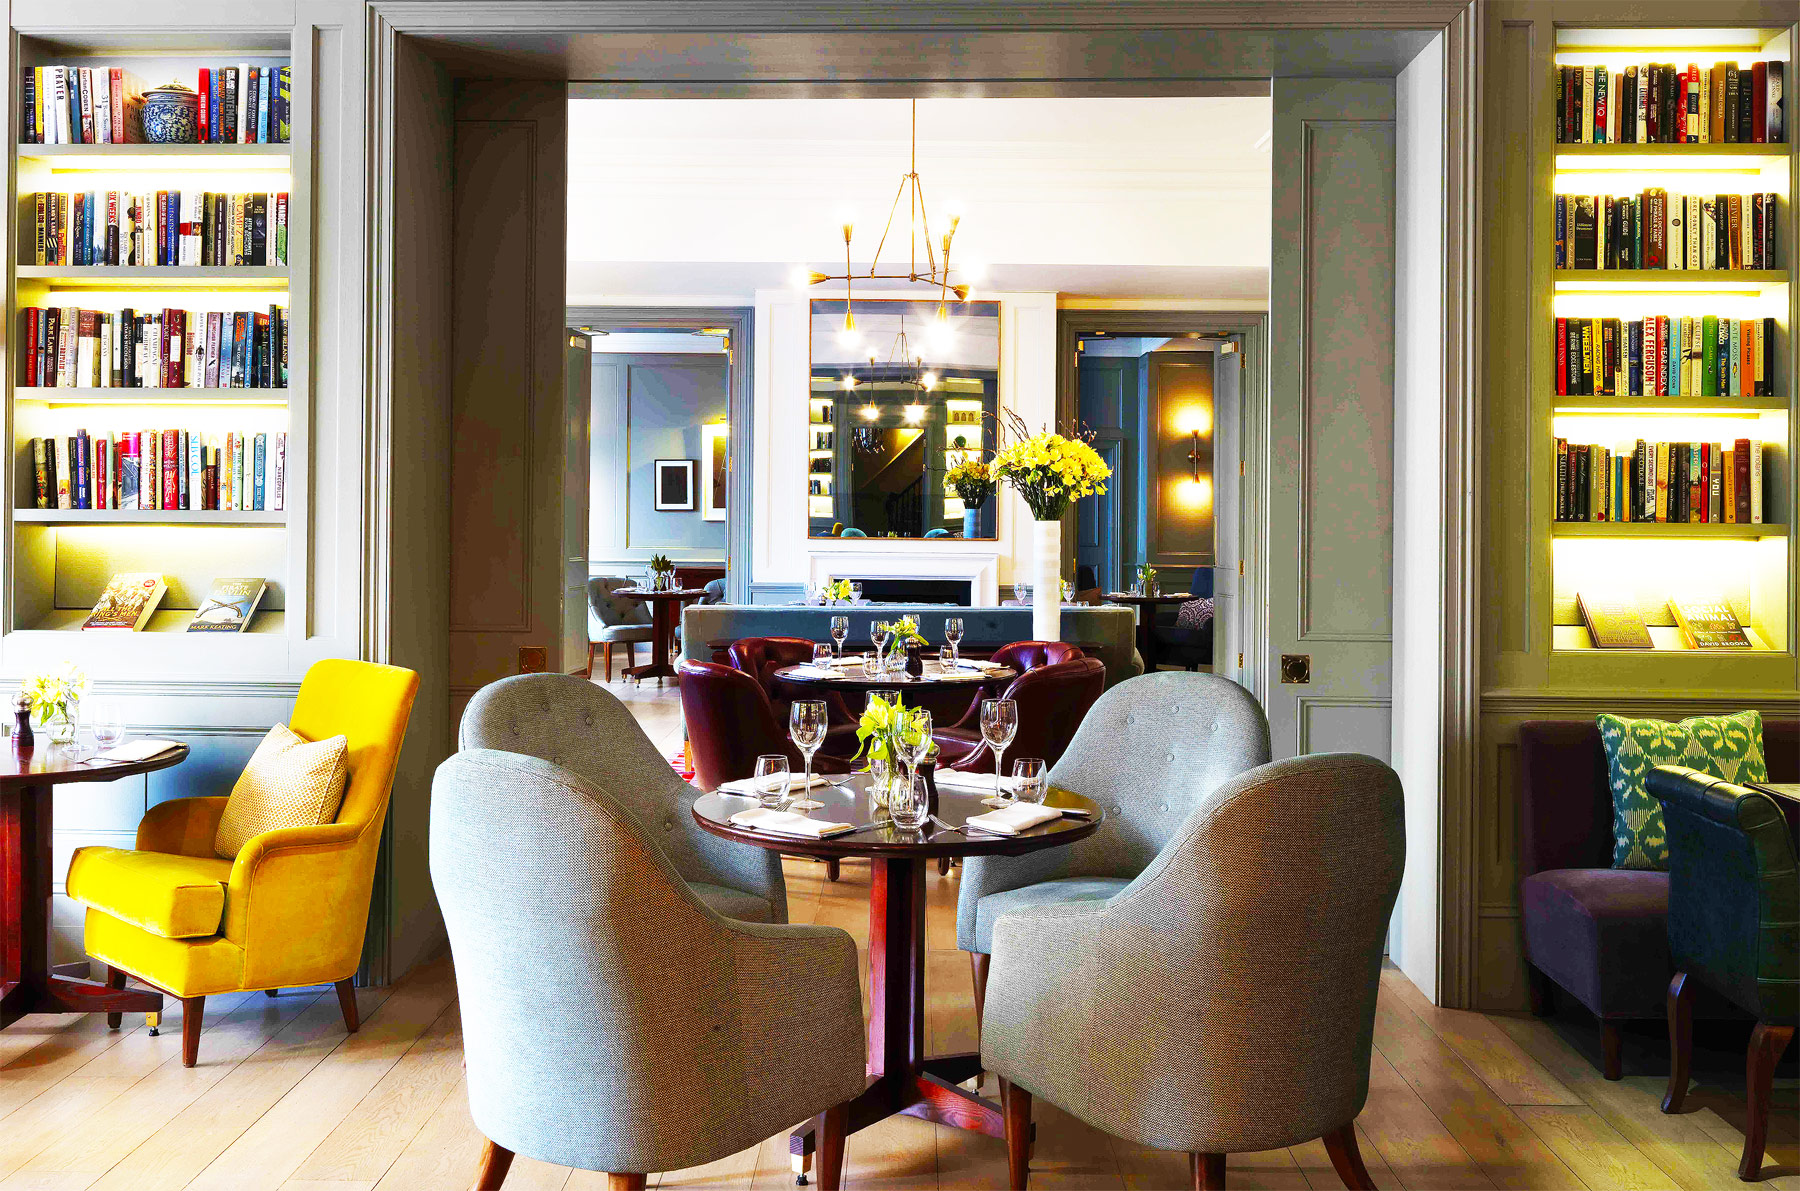 Town House at The Kensington serves up the season's best cuisine in a cosy, yet classical setting. Leanne Kelsall pops in for a quintessentially British dinner...